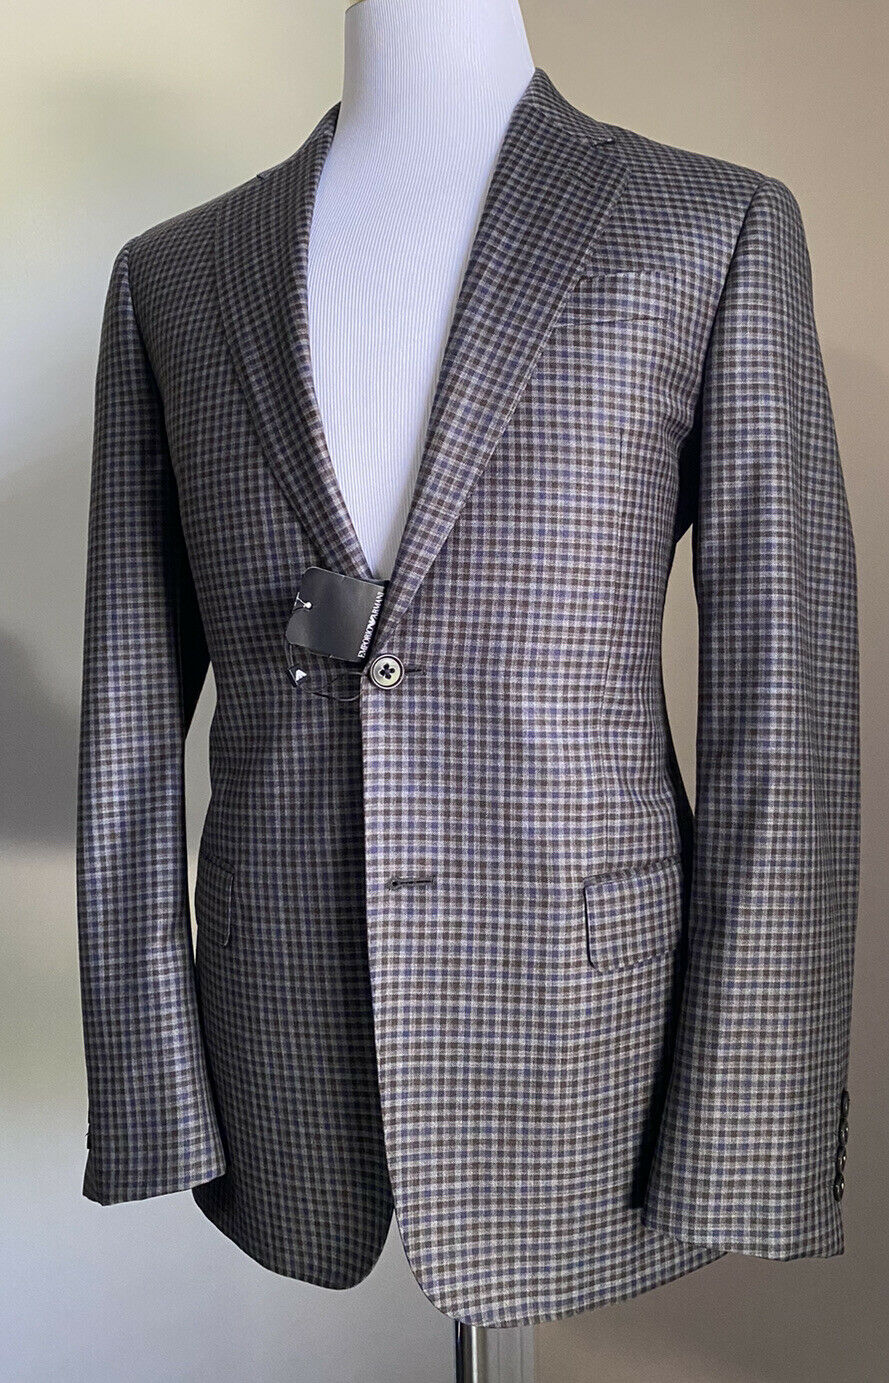 NWT $1495 Emporio Armani Super 130S Wool Blazer Jacket Brown/Blue 38R US/48R Eu